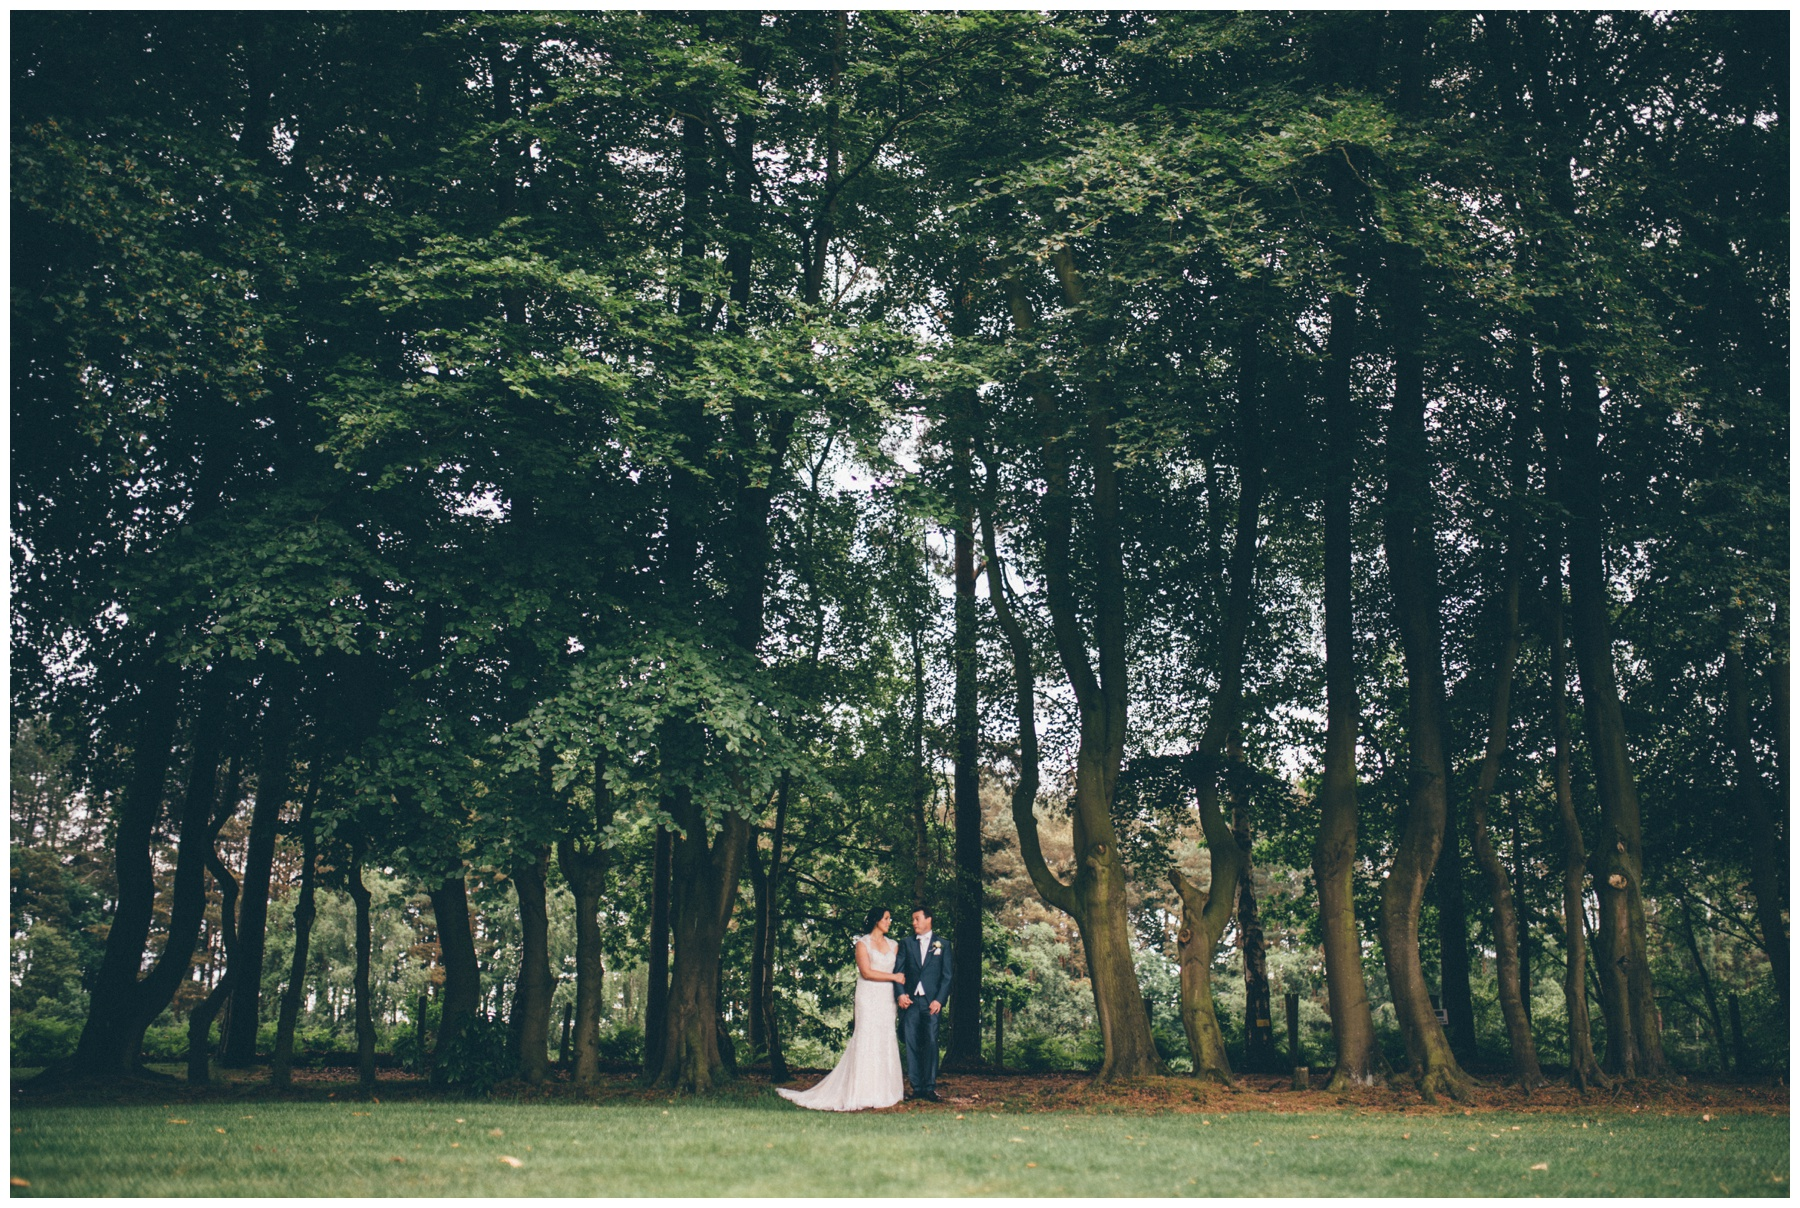 Bride and groom stand amongst the trees at Nunsmere Hall in Cheshire.